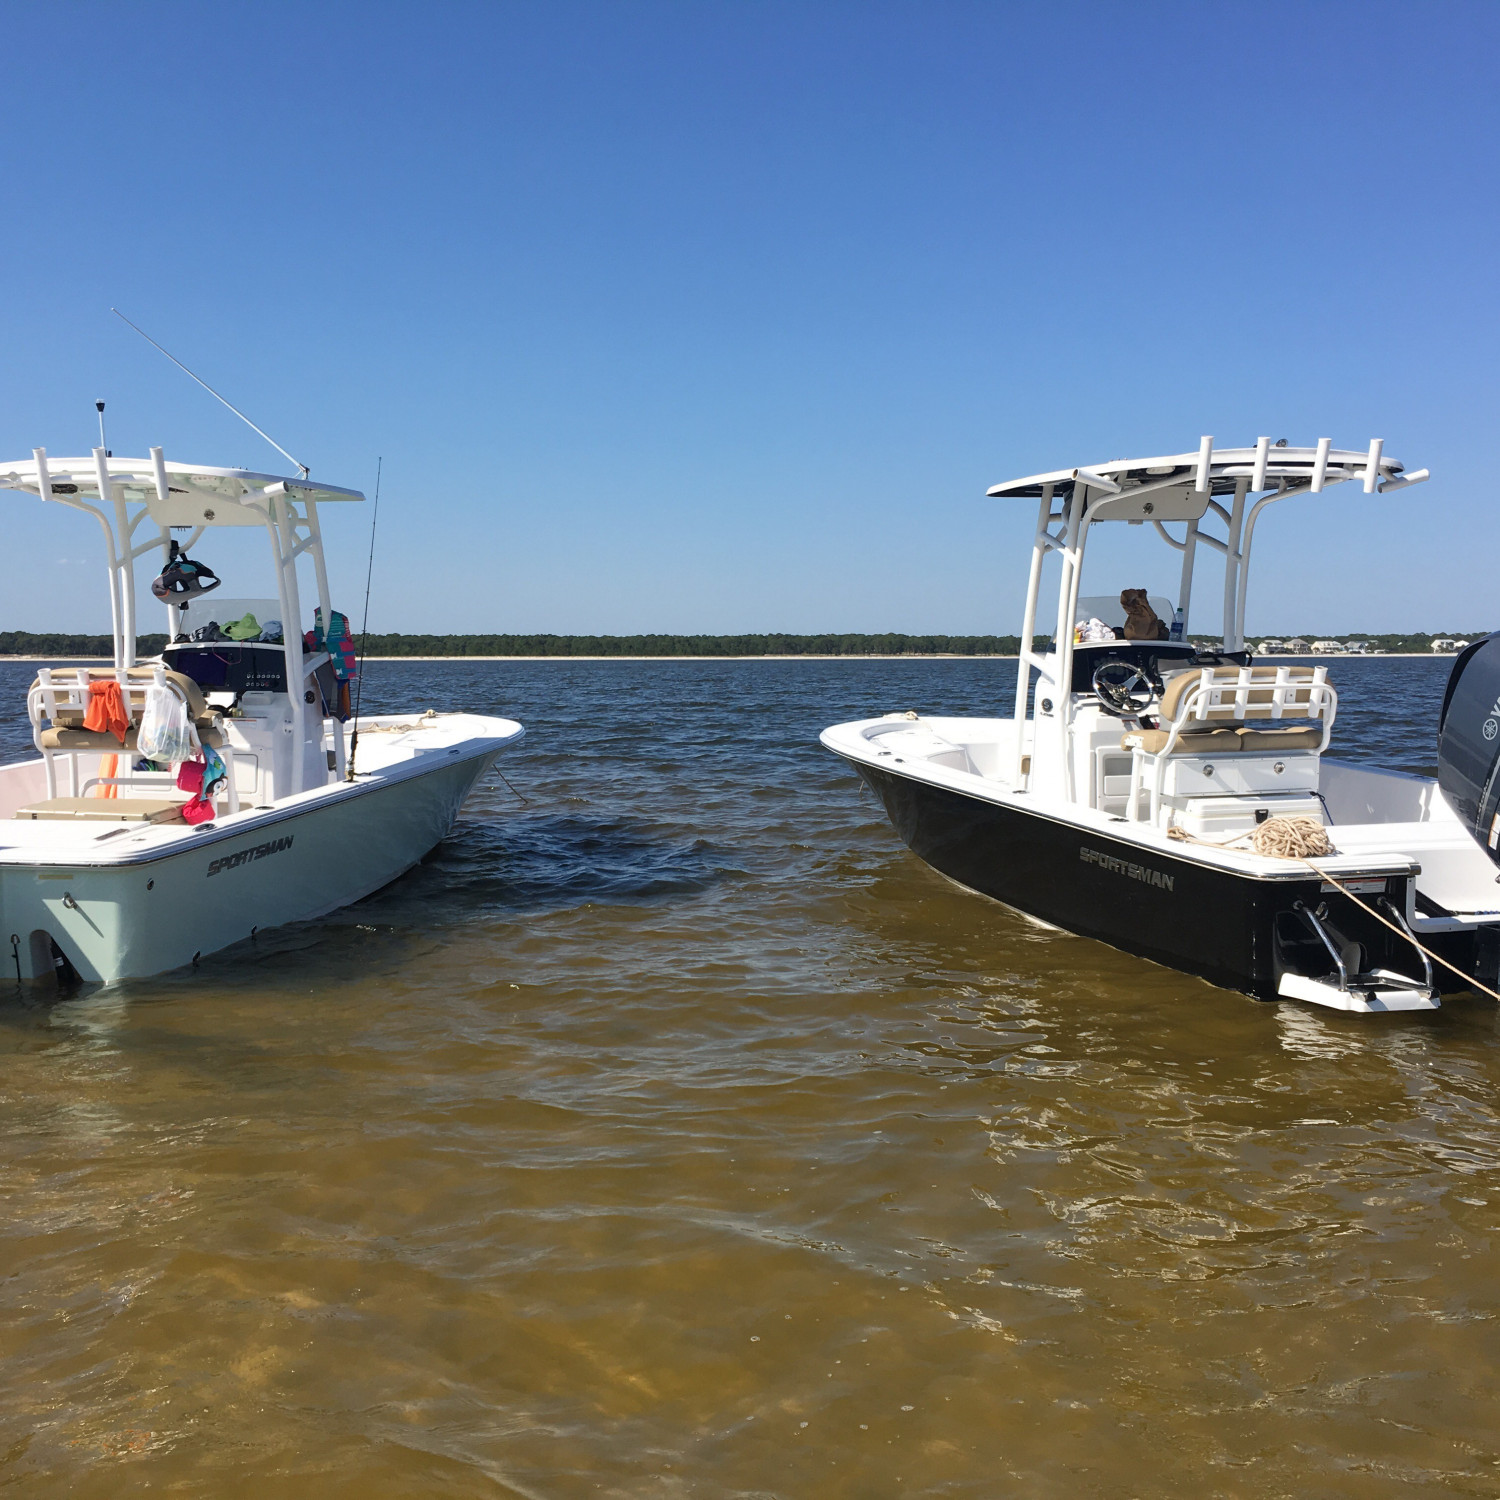 Title: Down time - On board their Sportsman Masters 247 Bay Boat - Location: Dauphin Island, AL. Participating in the Photo Contest #SportsmanMay2018